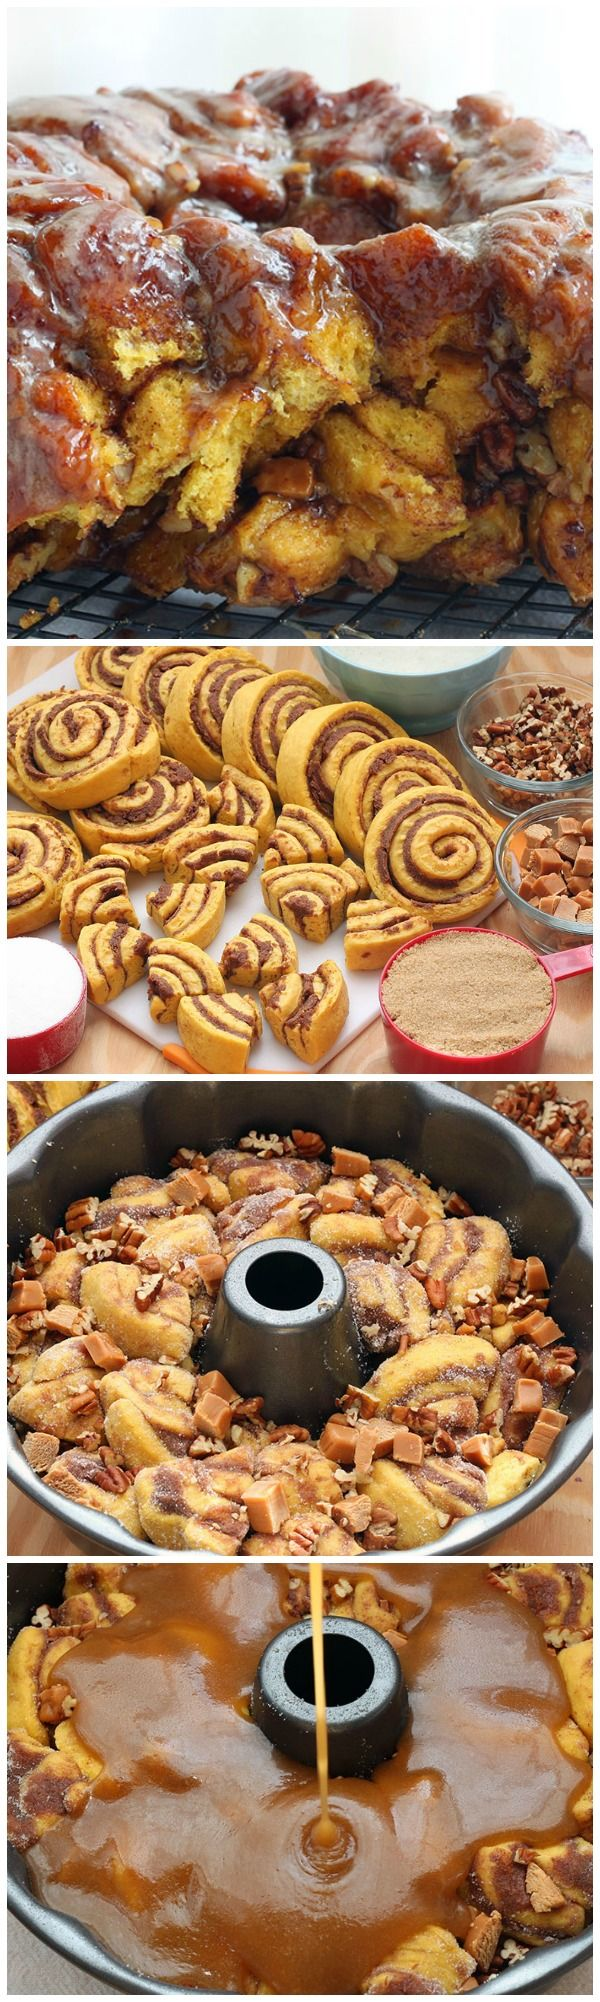 Best Idea Ever: Sweet pumpkin dough with swirls of cinnamon baked in butter and brown sugar!